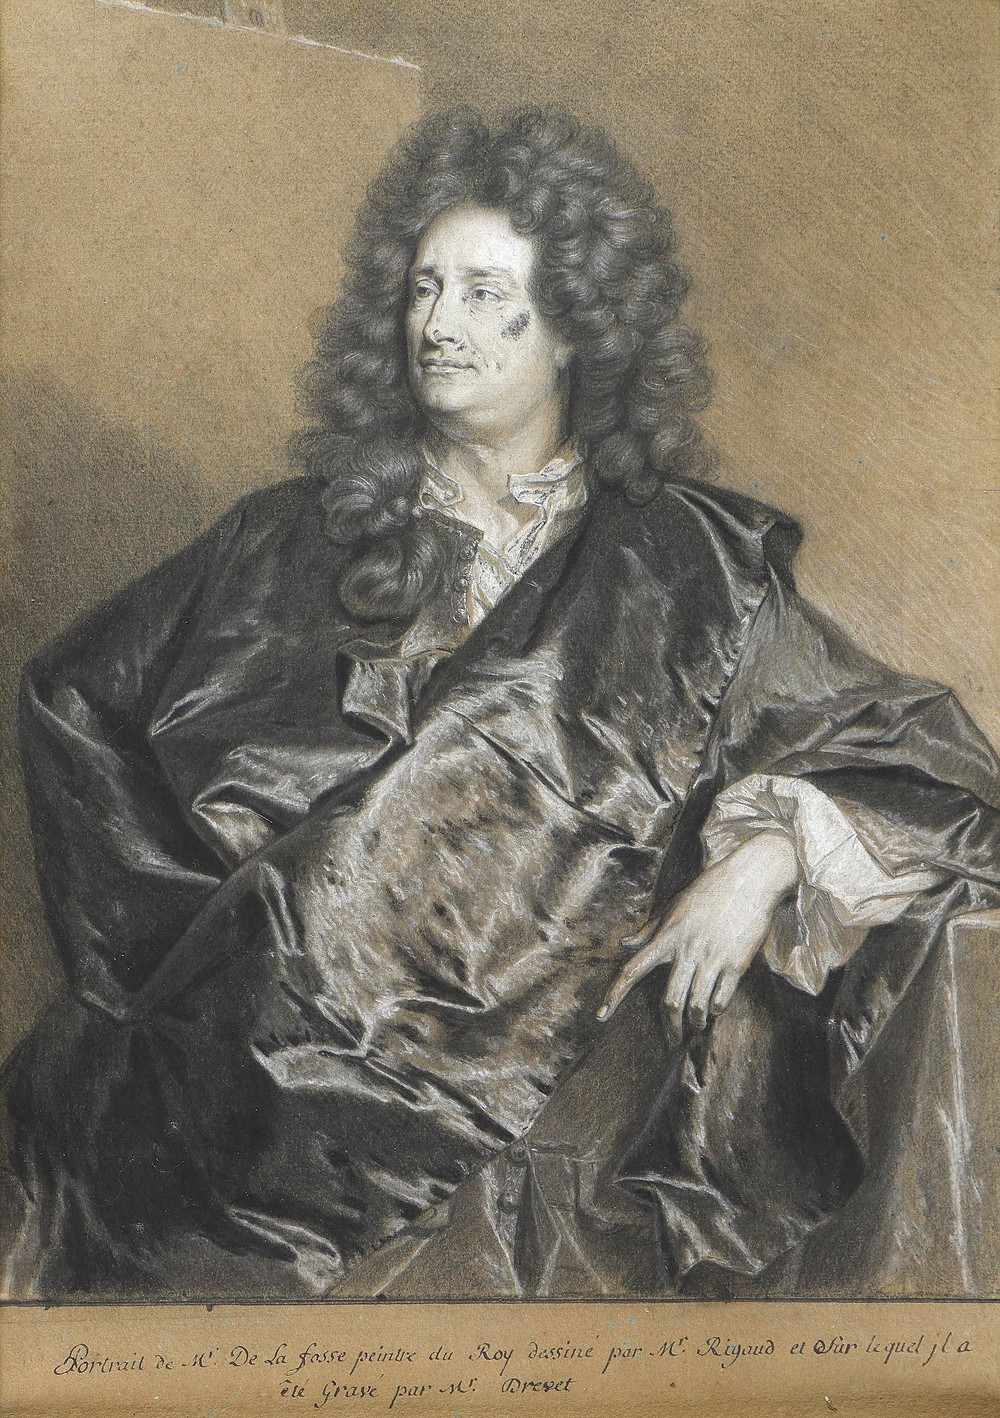 Hyacinthe Rigaud et B. Monmorency, Charles de La Fosse, collection particulière